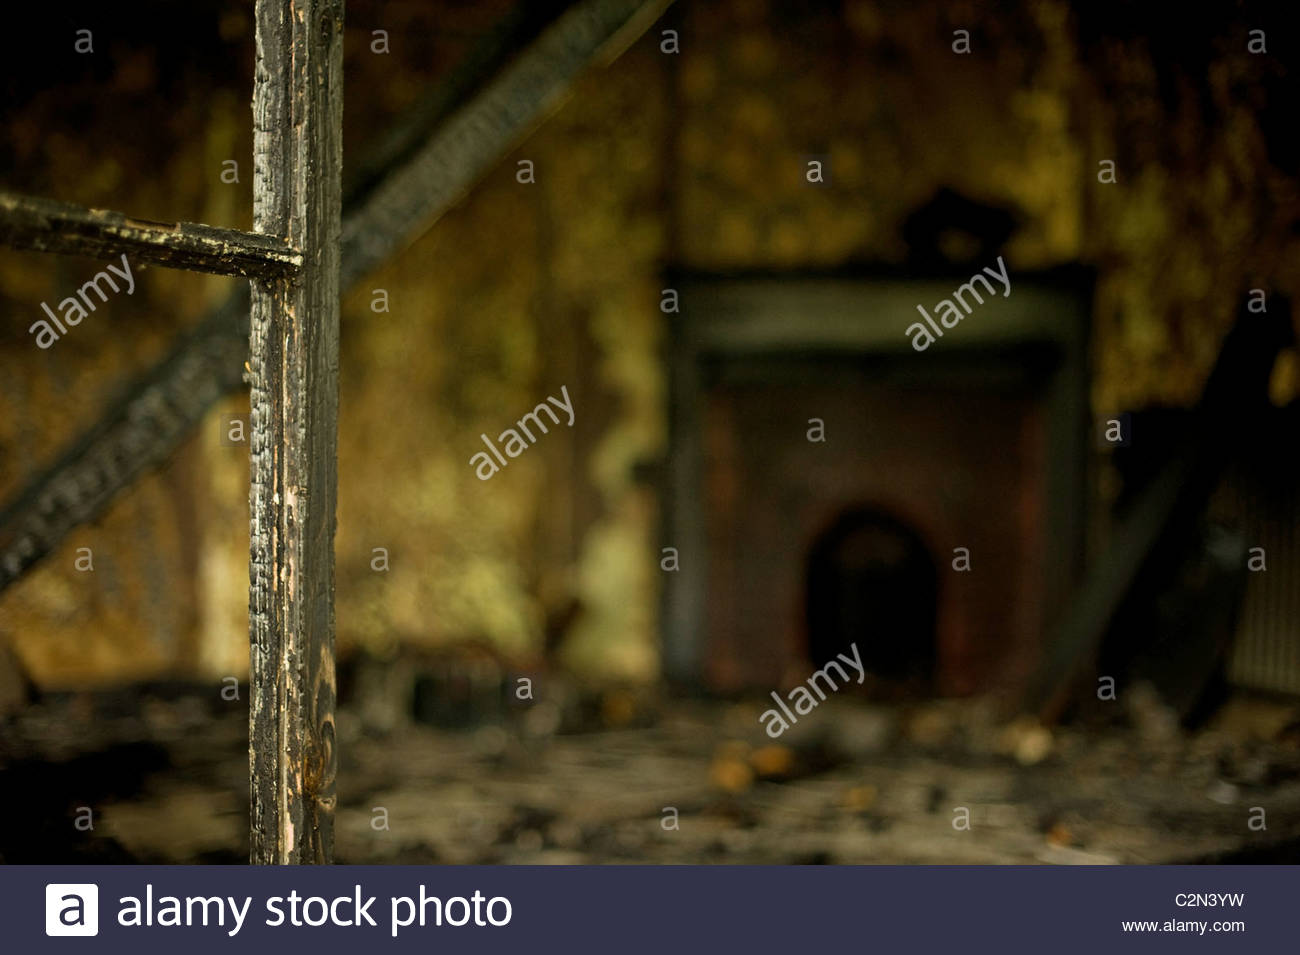 Abandoned fire damage room with a fireplace - Stock Image